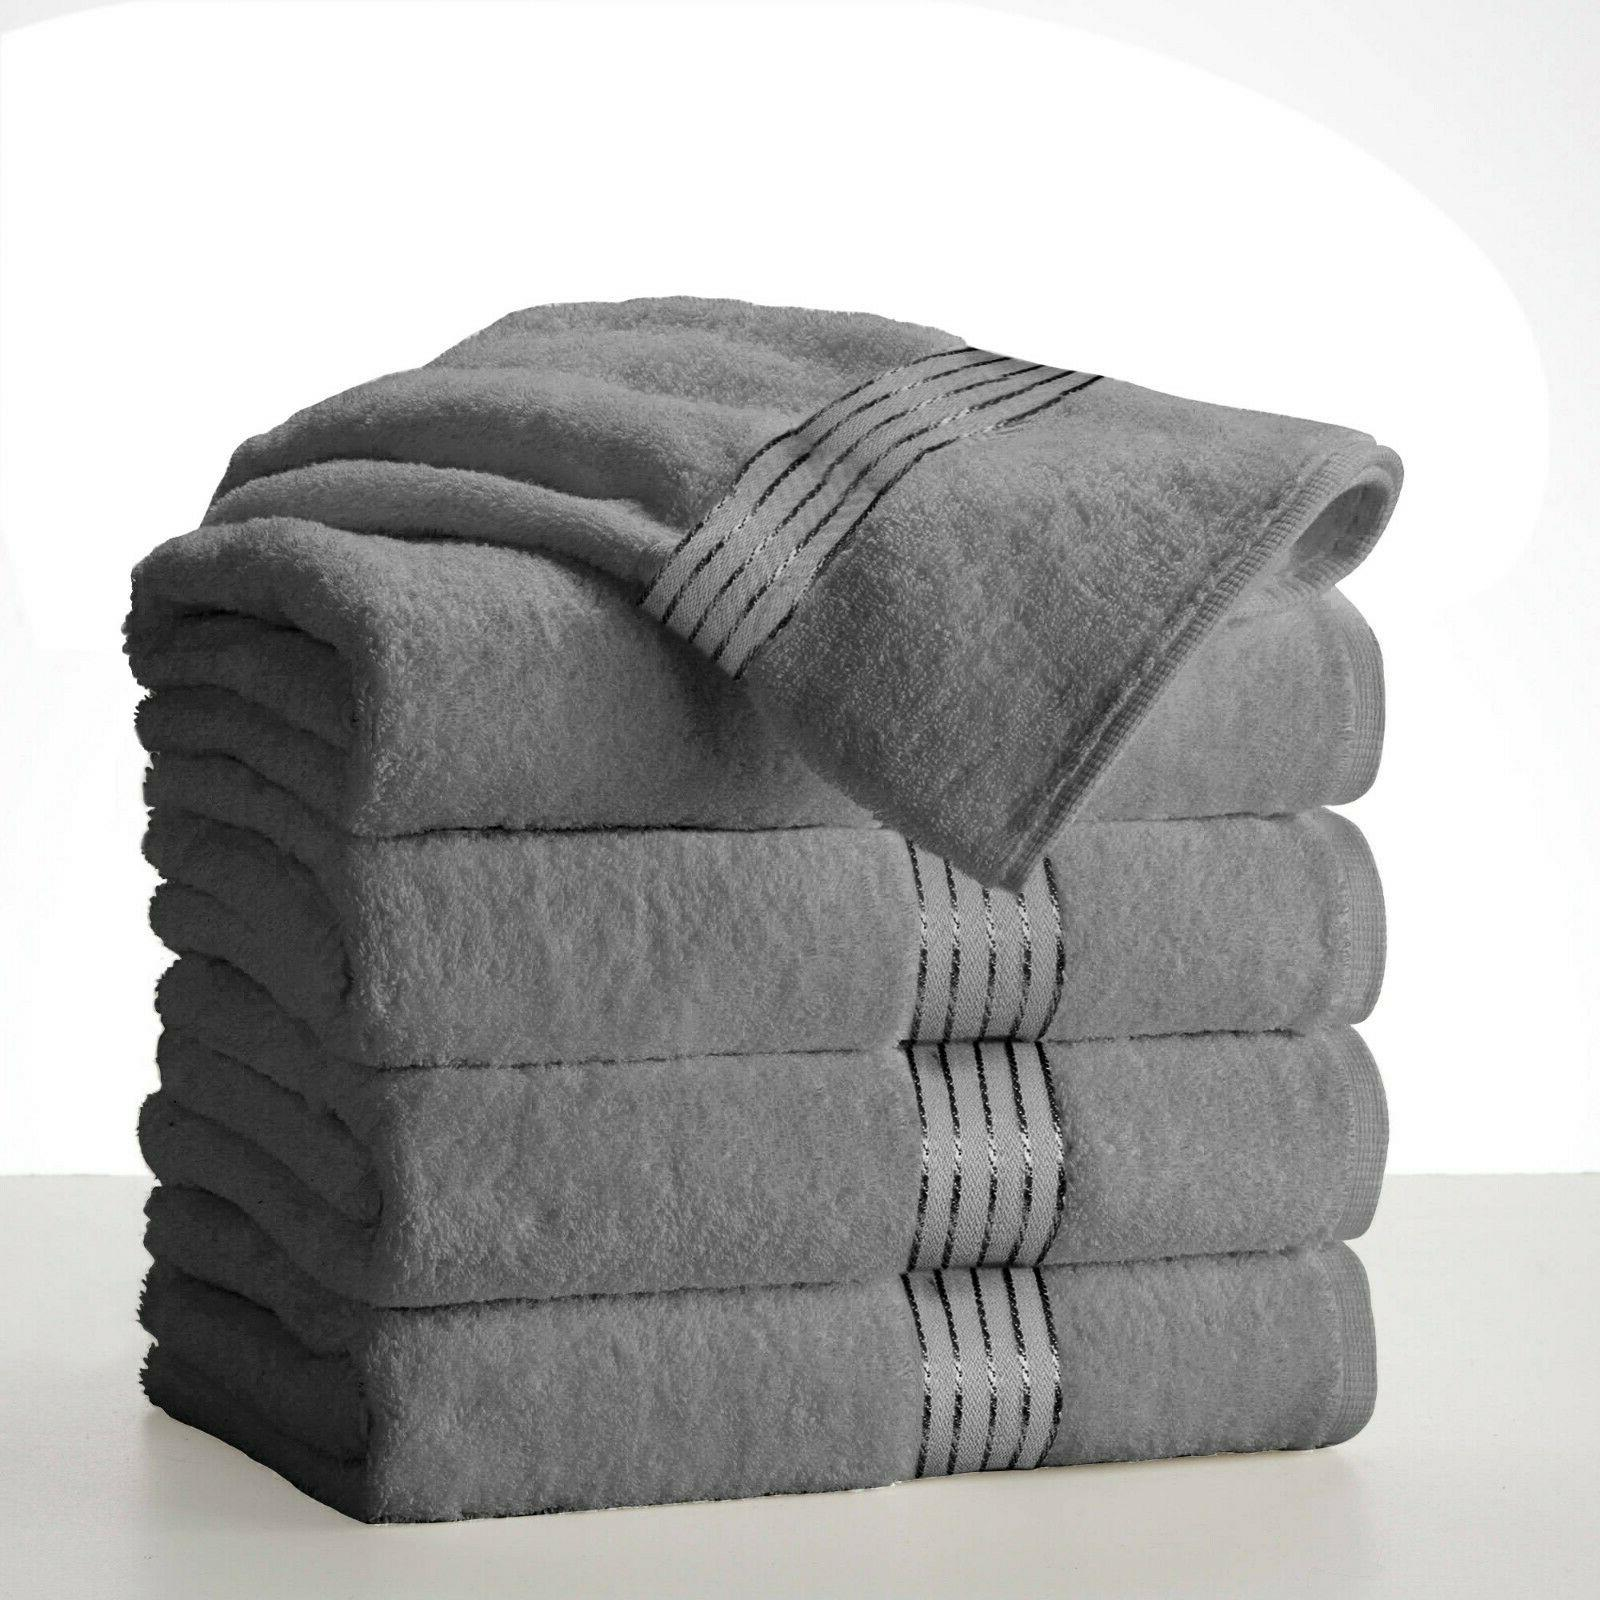 Silver Grey Towels Cotton Absorbent